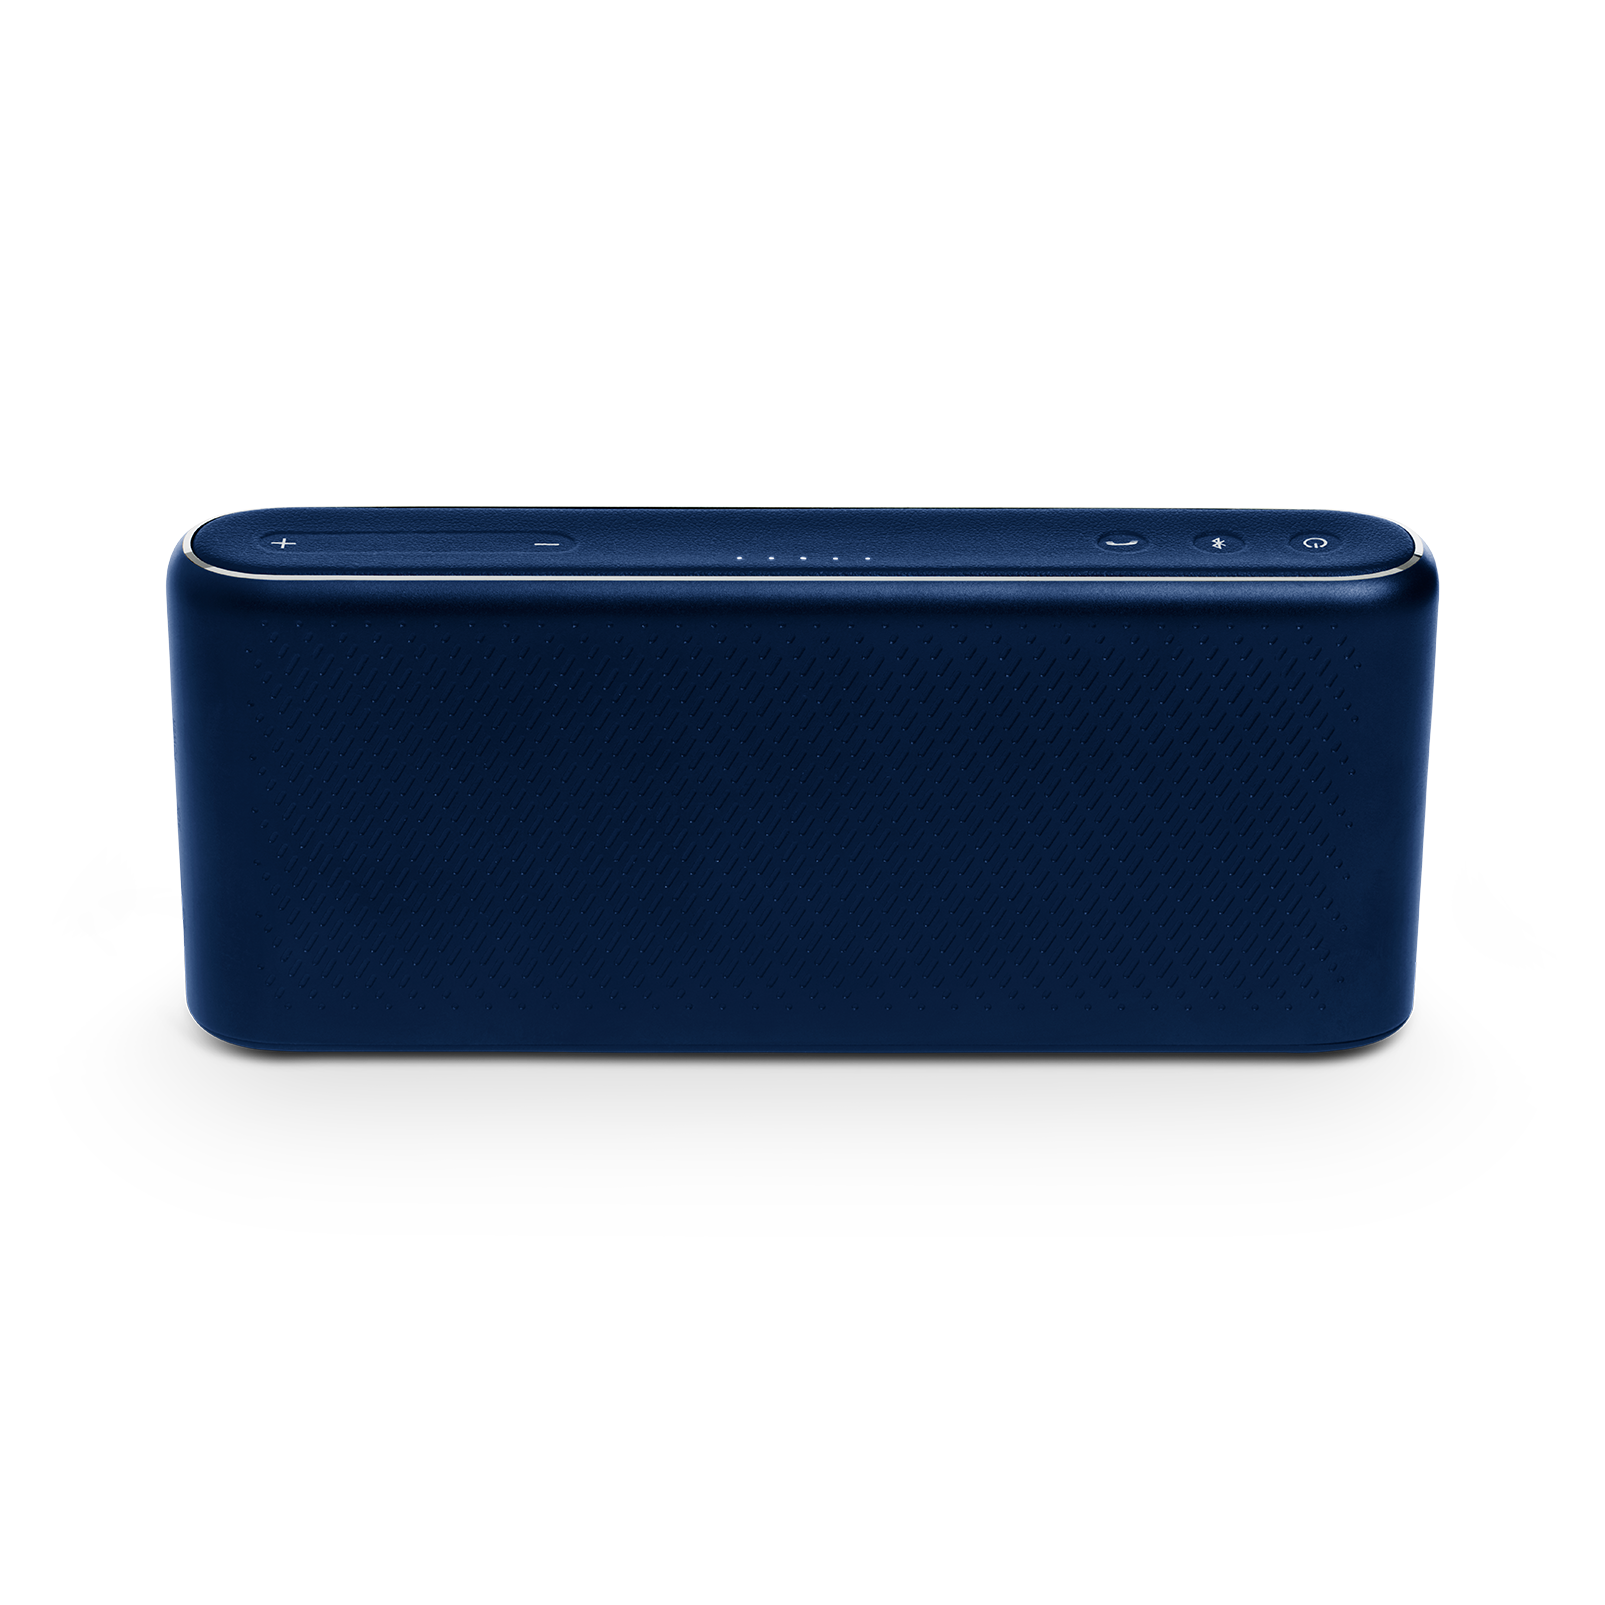 Traveler - Blue - All-in-one travel speaker - Back